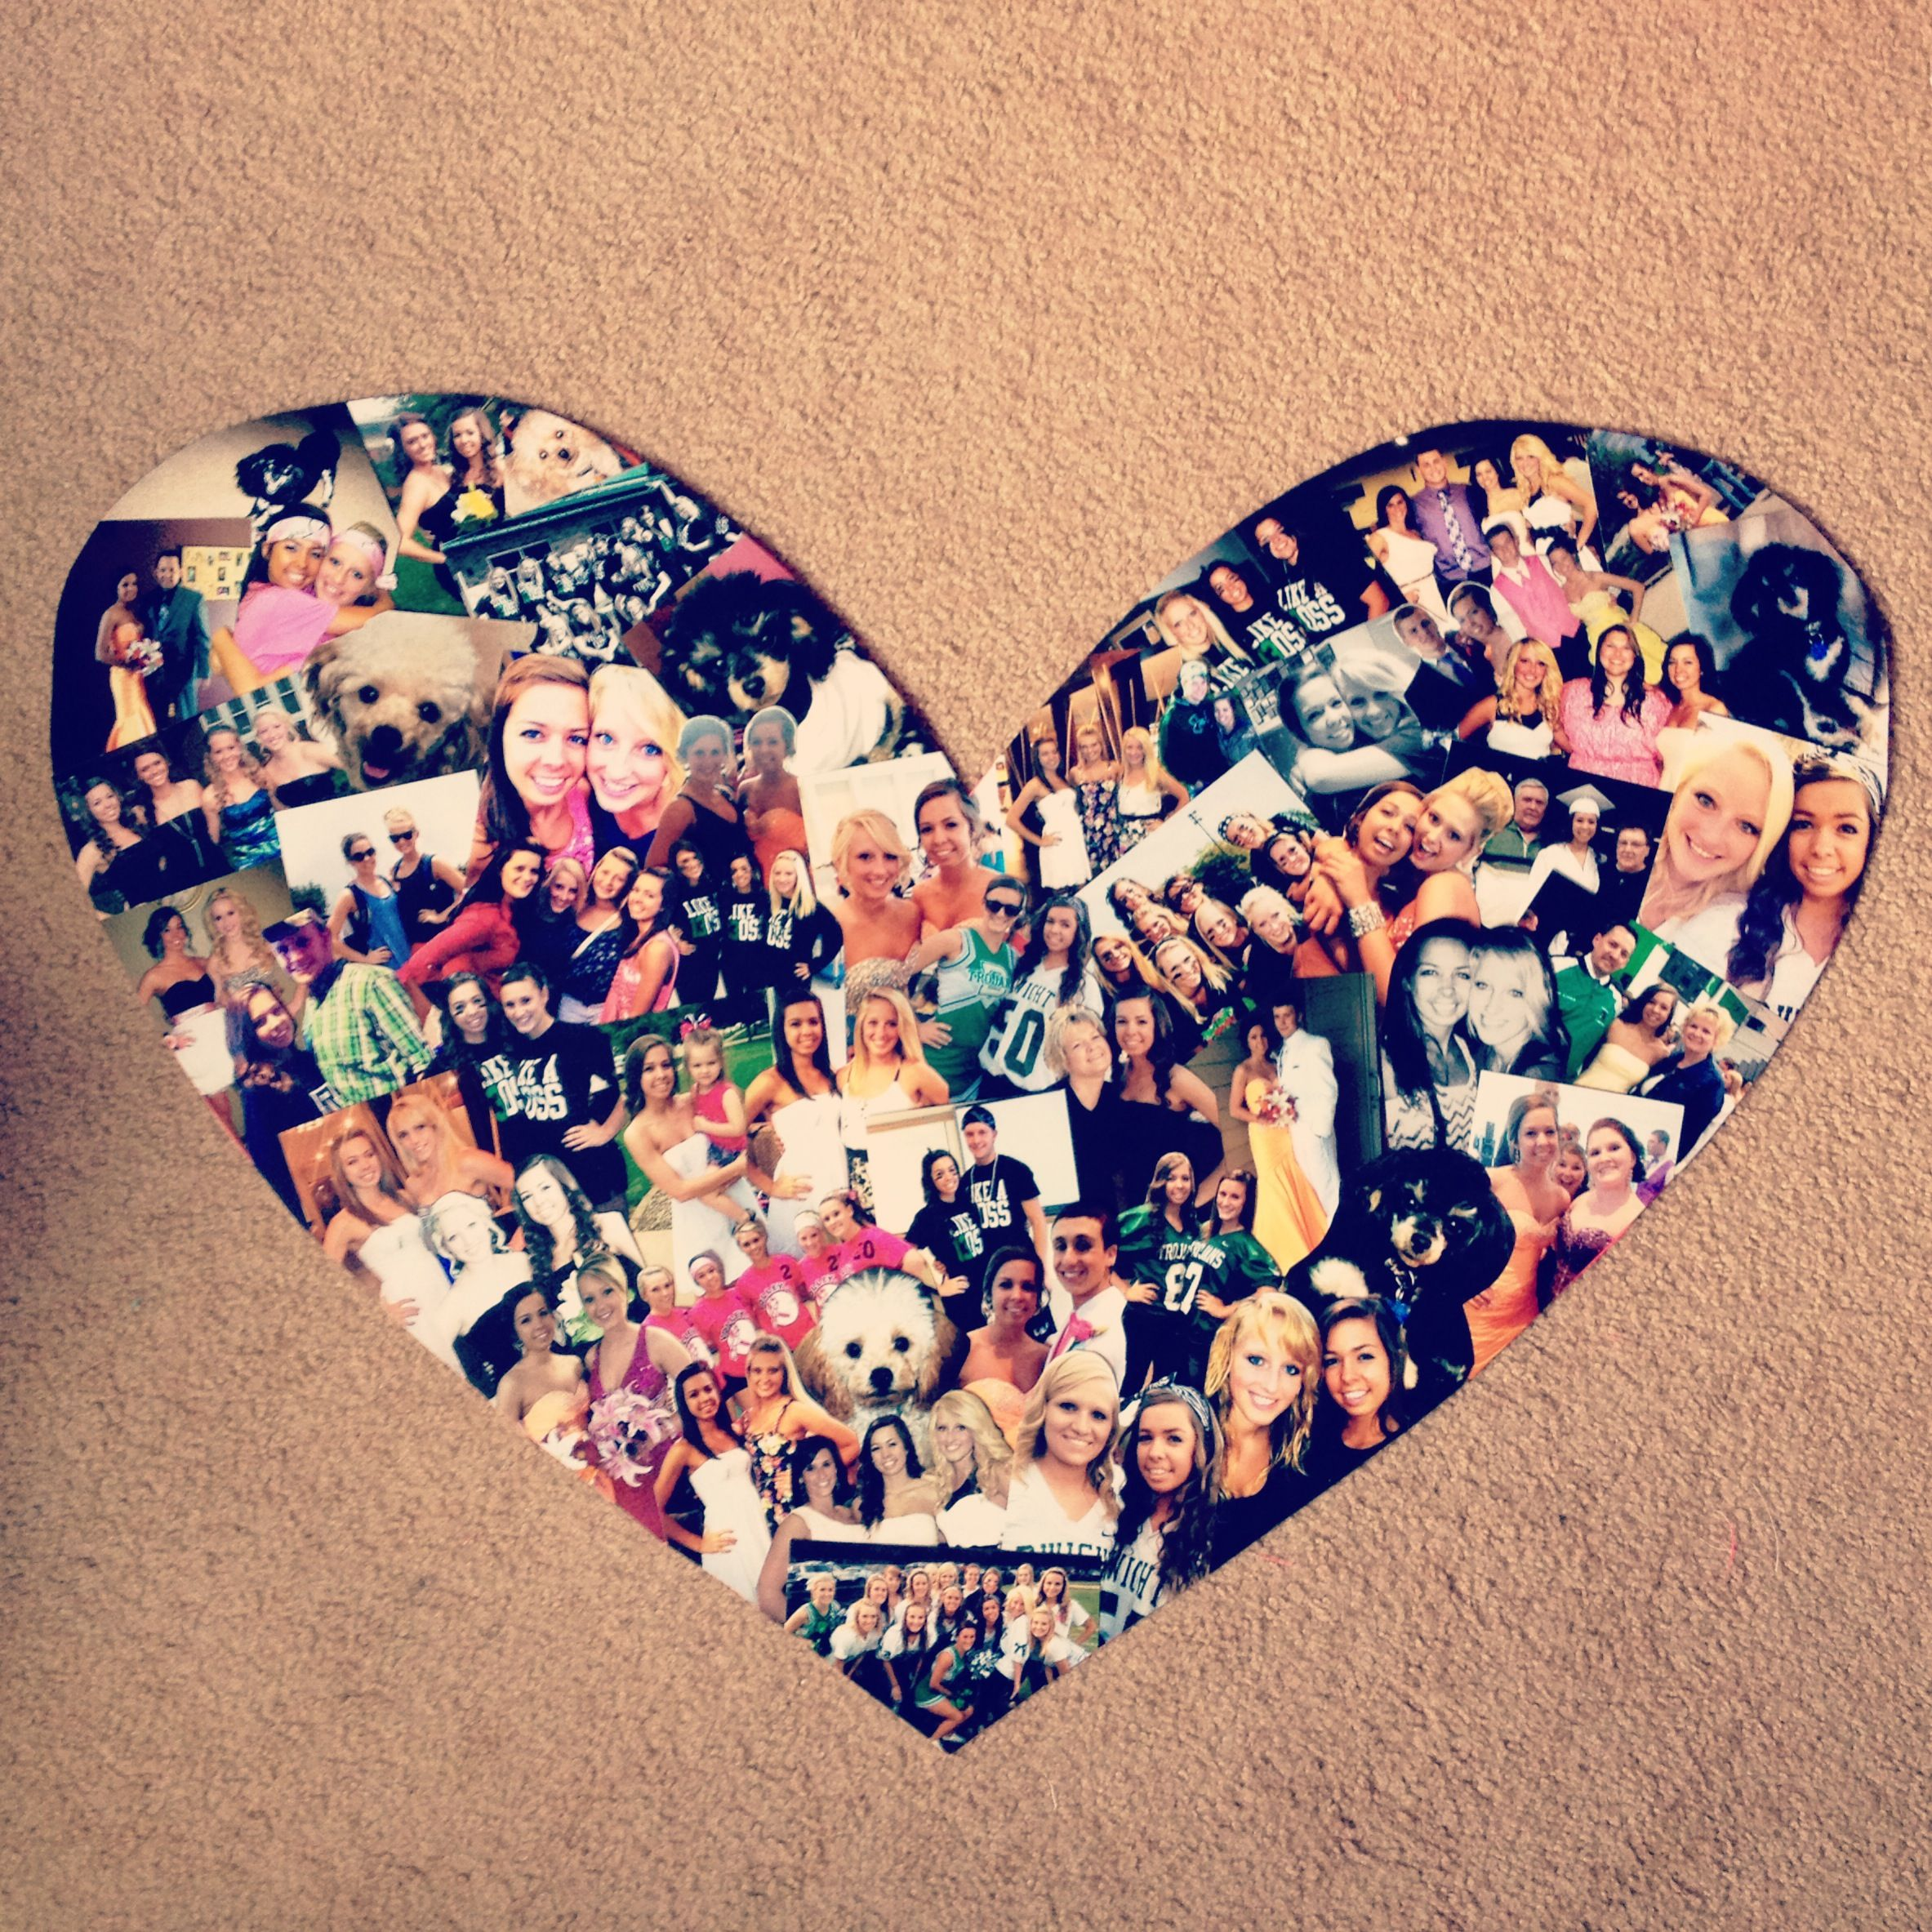 diy heart picture collage i cut 2 pieces of poster board